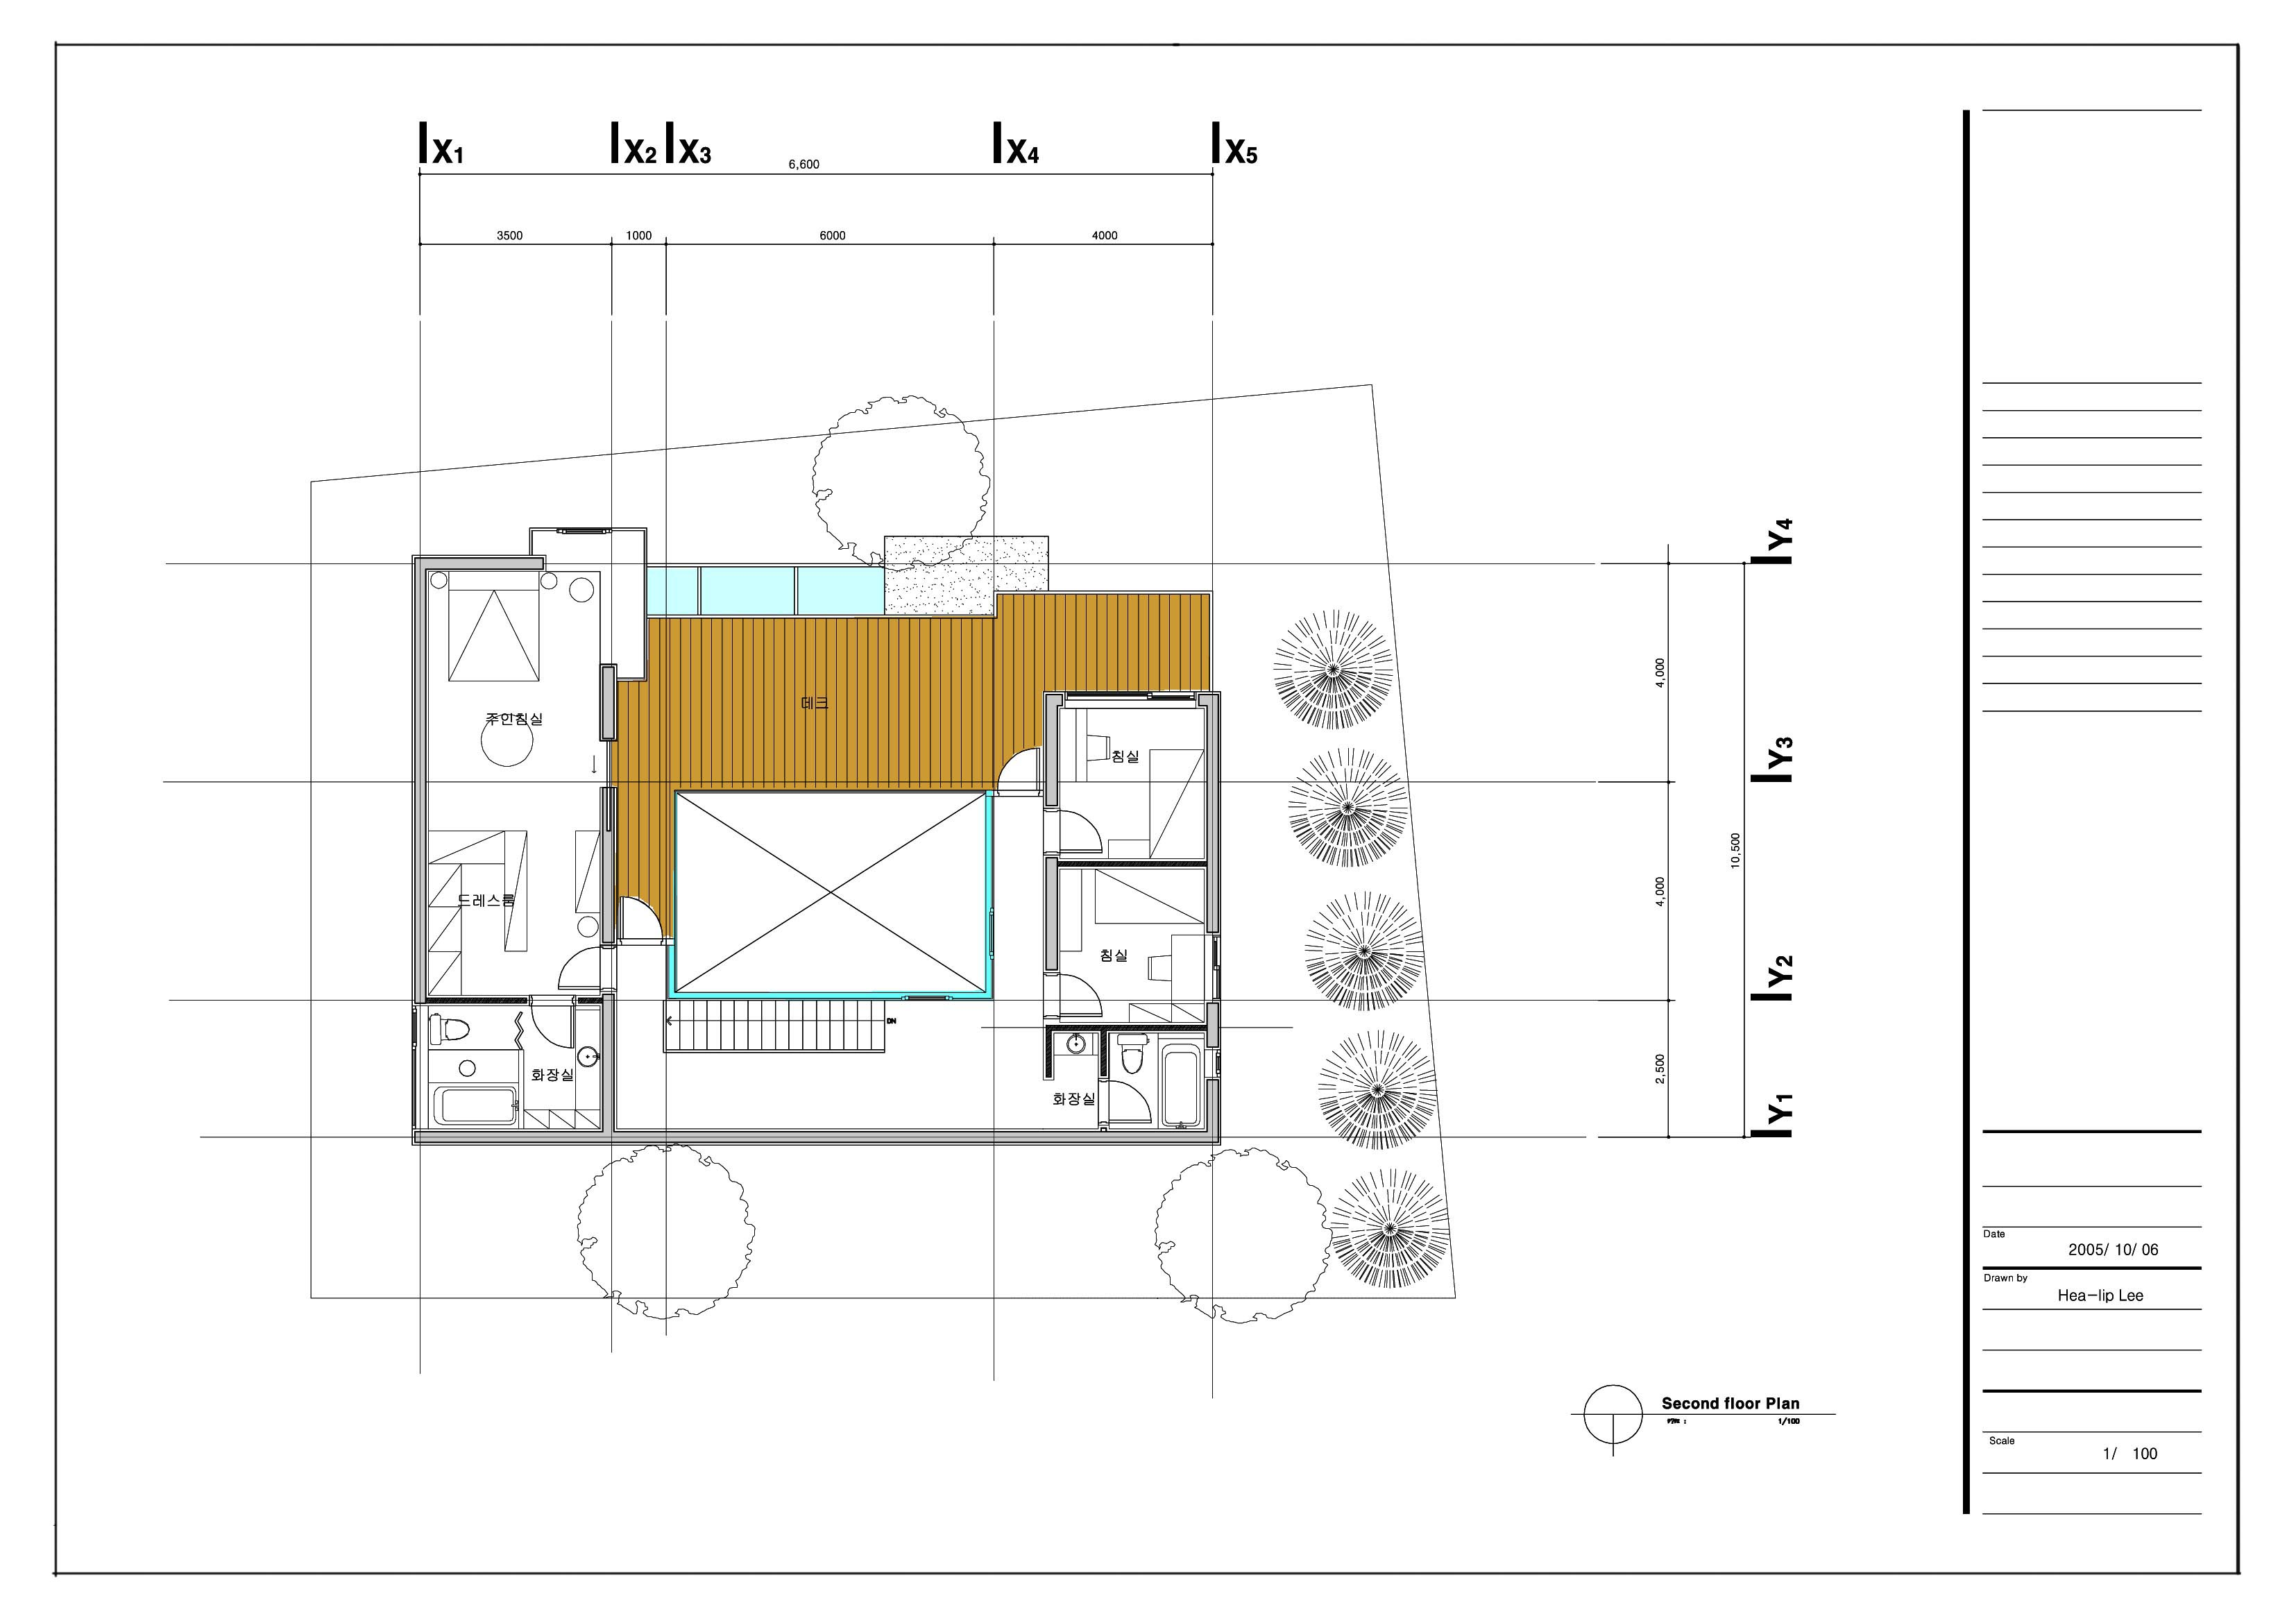 Cad Plan 2nd Floor